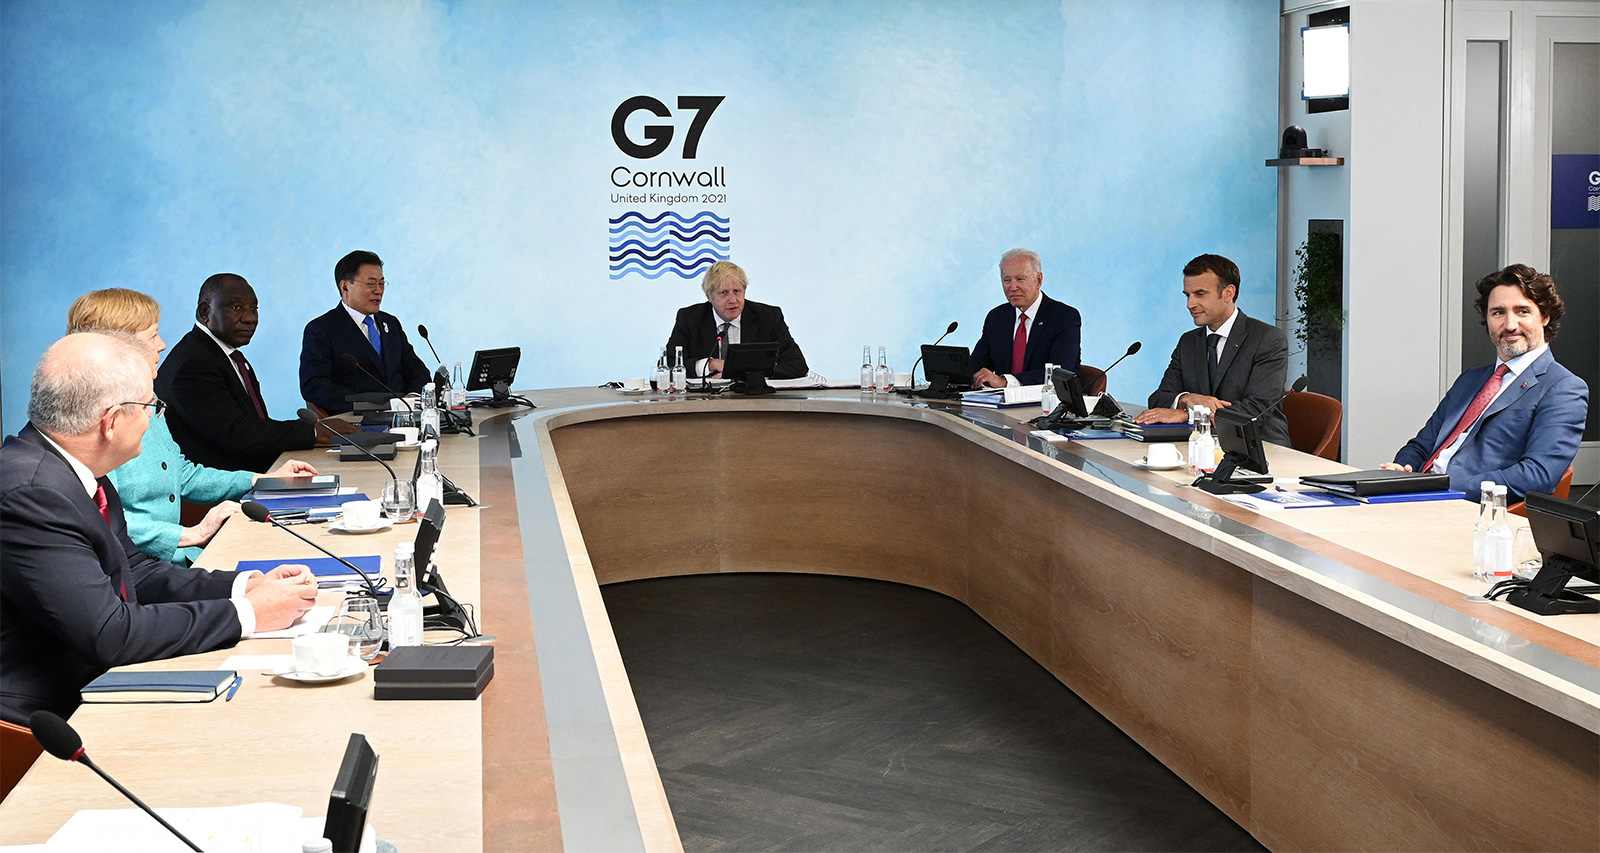 World leaders meet at the G7 summit in Carbis Bay, Cornwall on June 12.